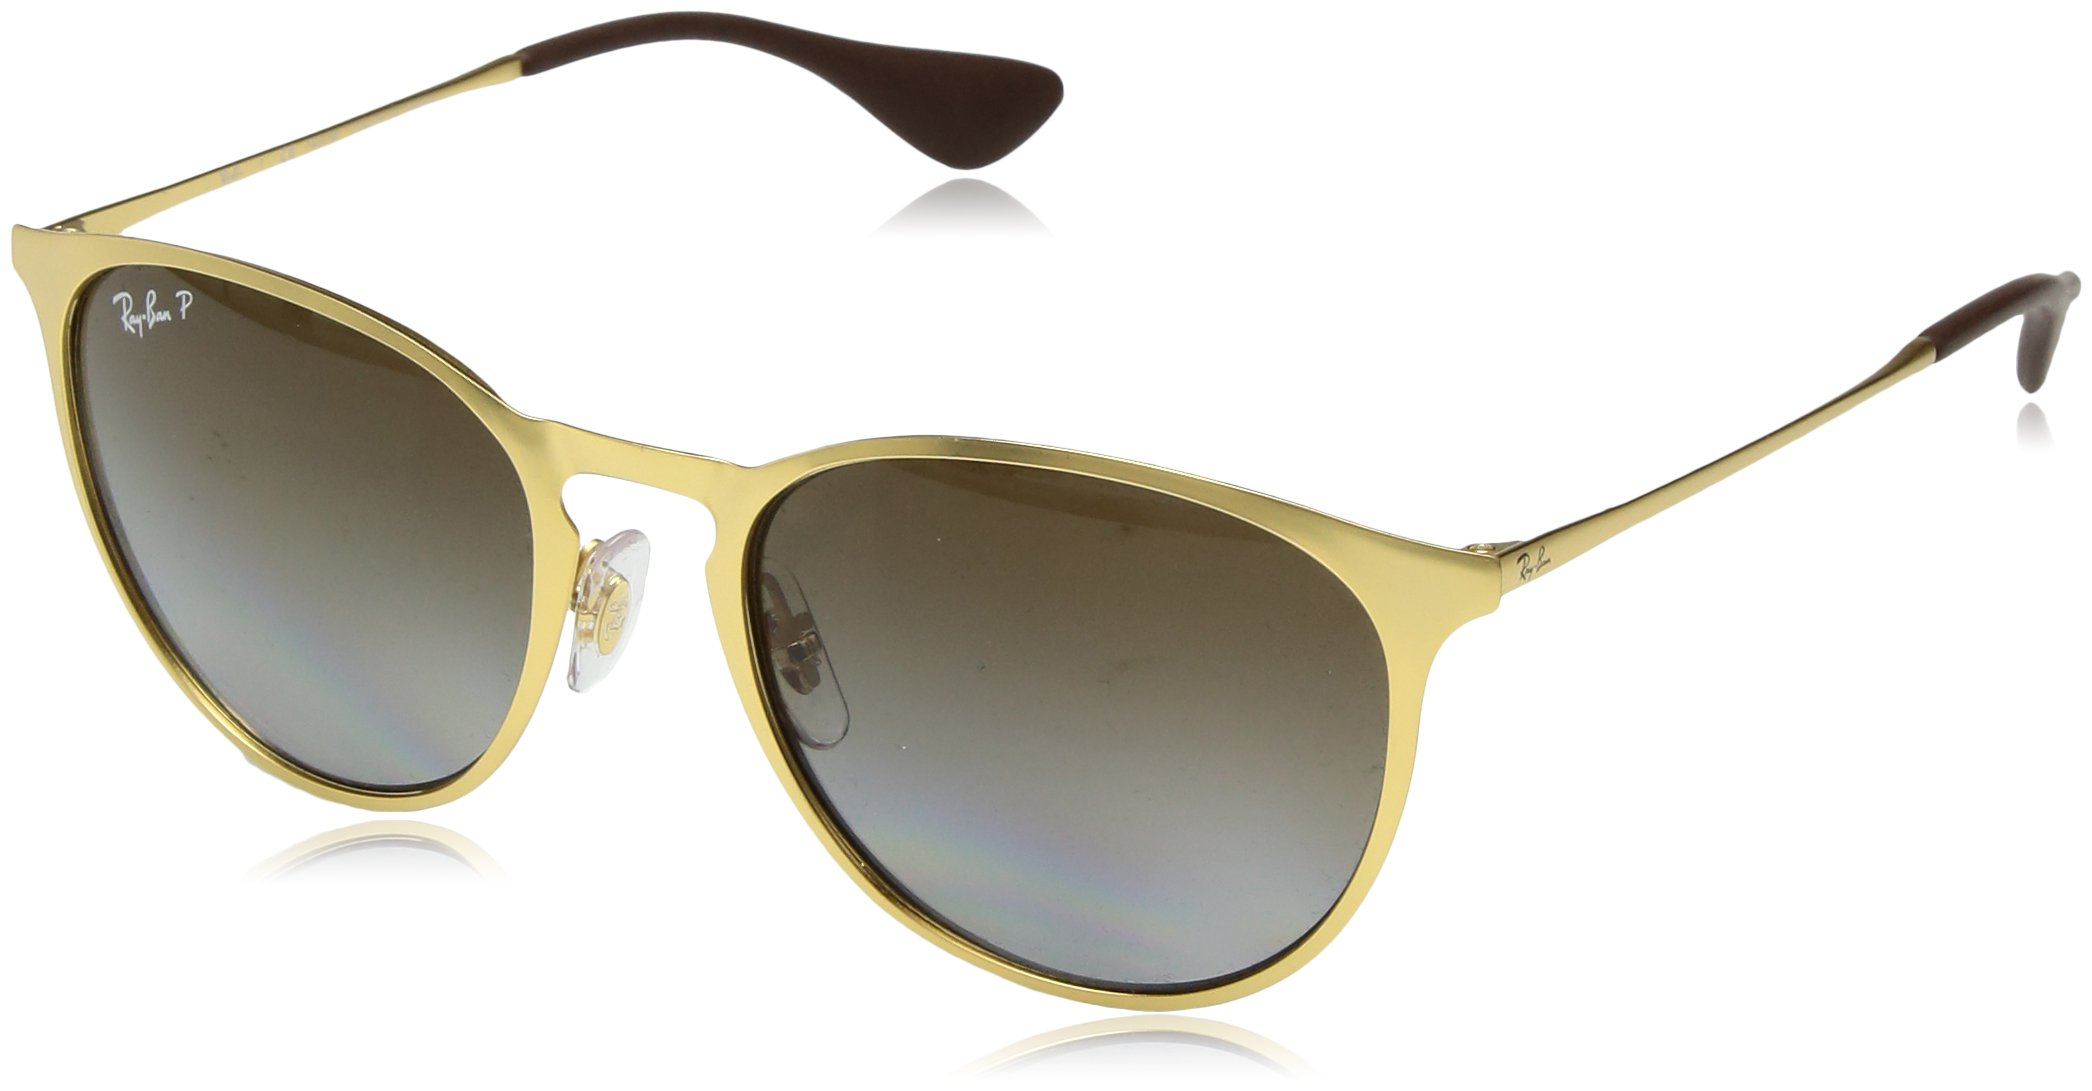 RAY-BAN RB3539 Erika Round Metal Sunglasses, Matte Gold/Polarized Brown Gradient, 54 mm by RAY-BAN